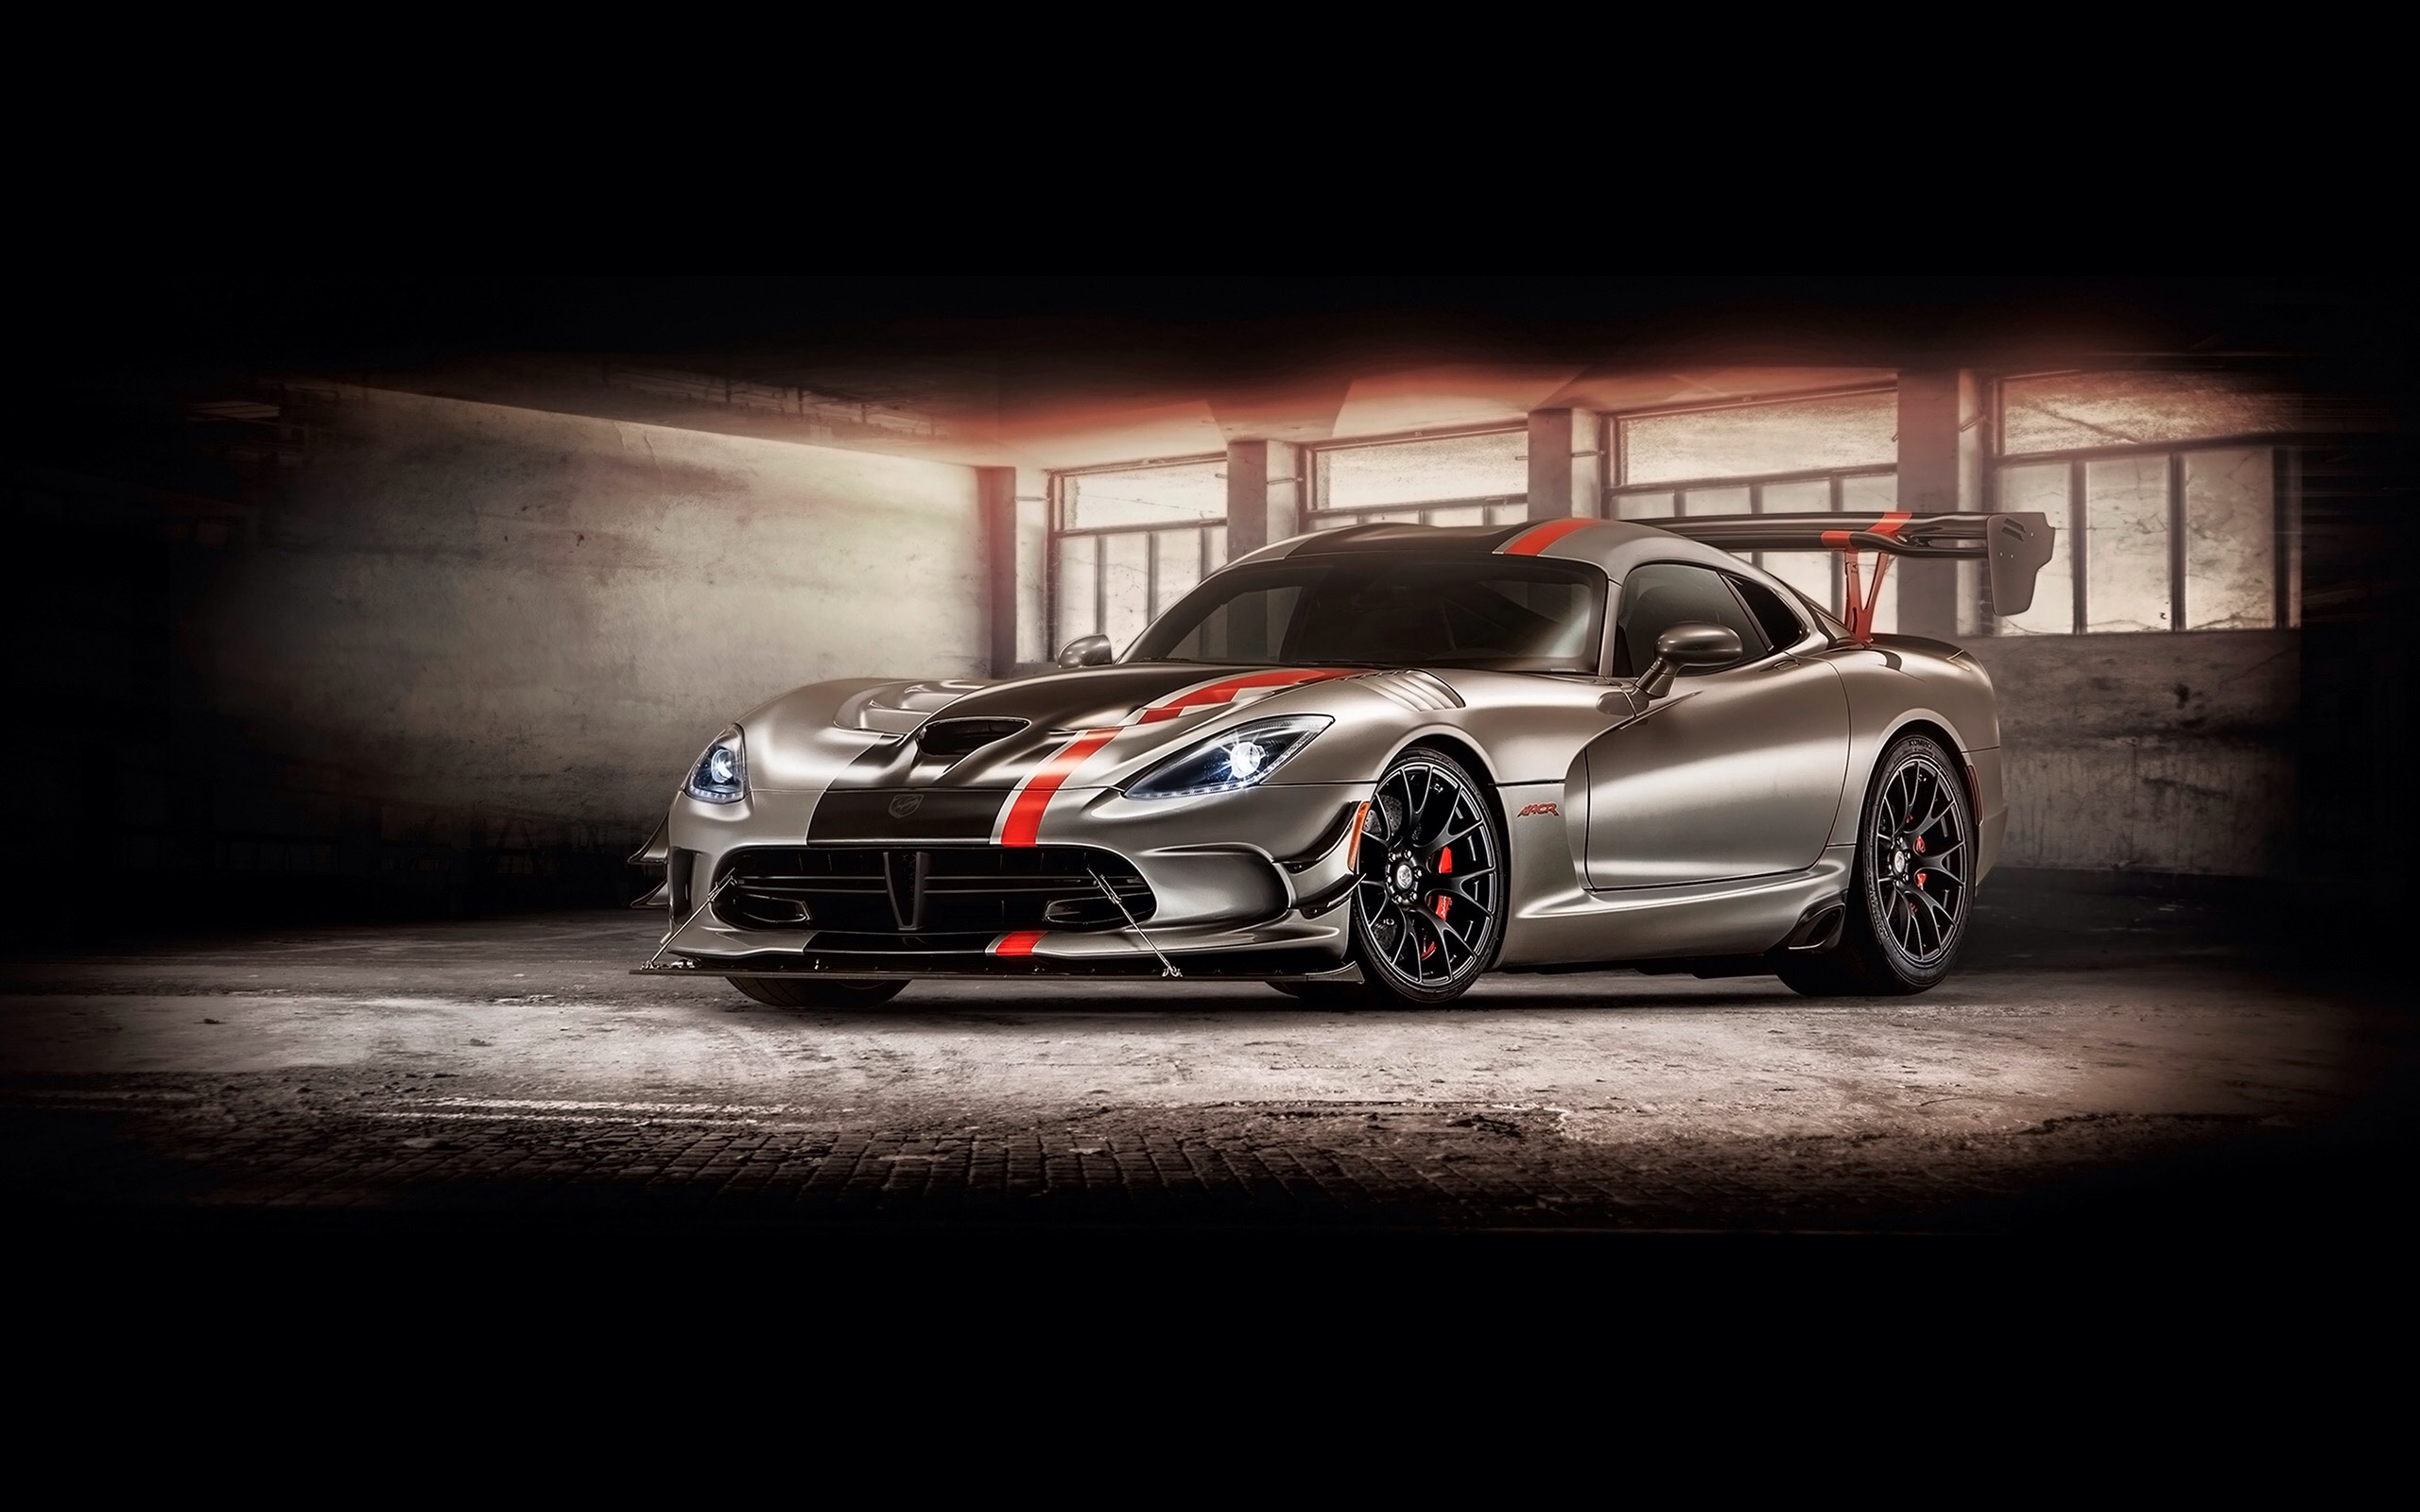 The Awesome Dodge Viper Acr whats your thoughts